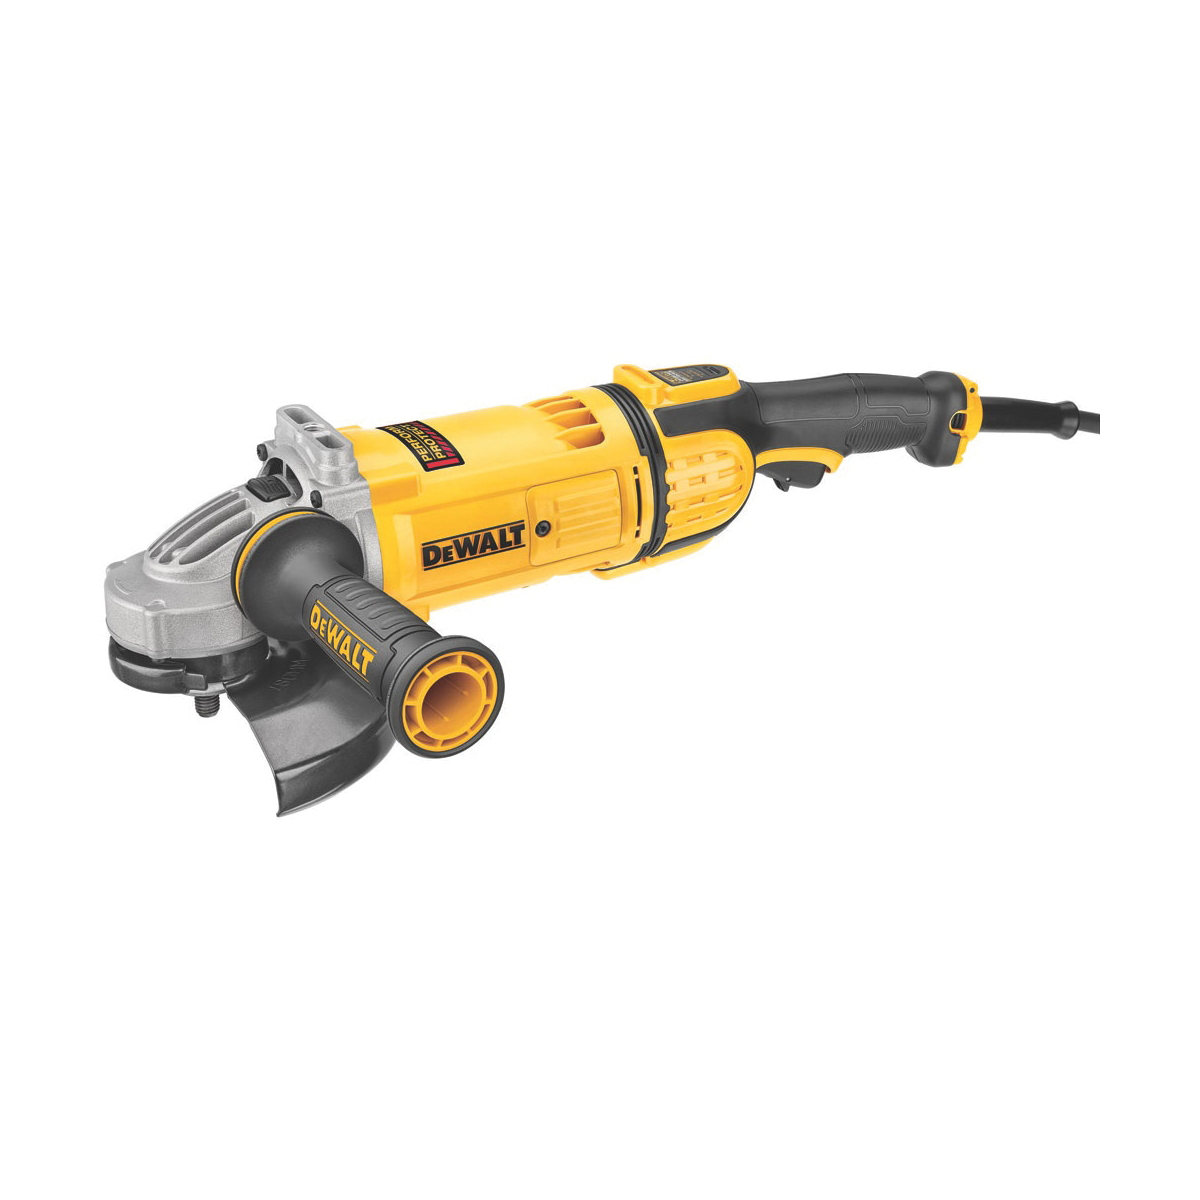 DeWALT® DWE4597N Protect™ Large Angle Grinder, 7 in Dia Wheel, 5/8-11 Arbor/Shank, 120 VAC, Yellow, Yes Dust Management, Lock-On/Off Trigger Switch Switch, Tool Only